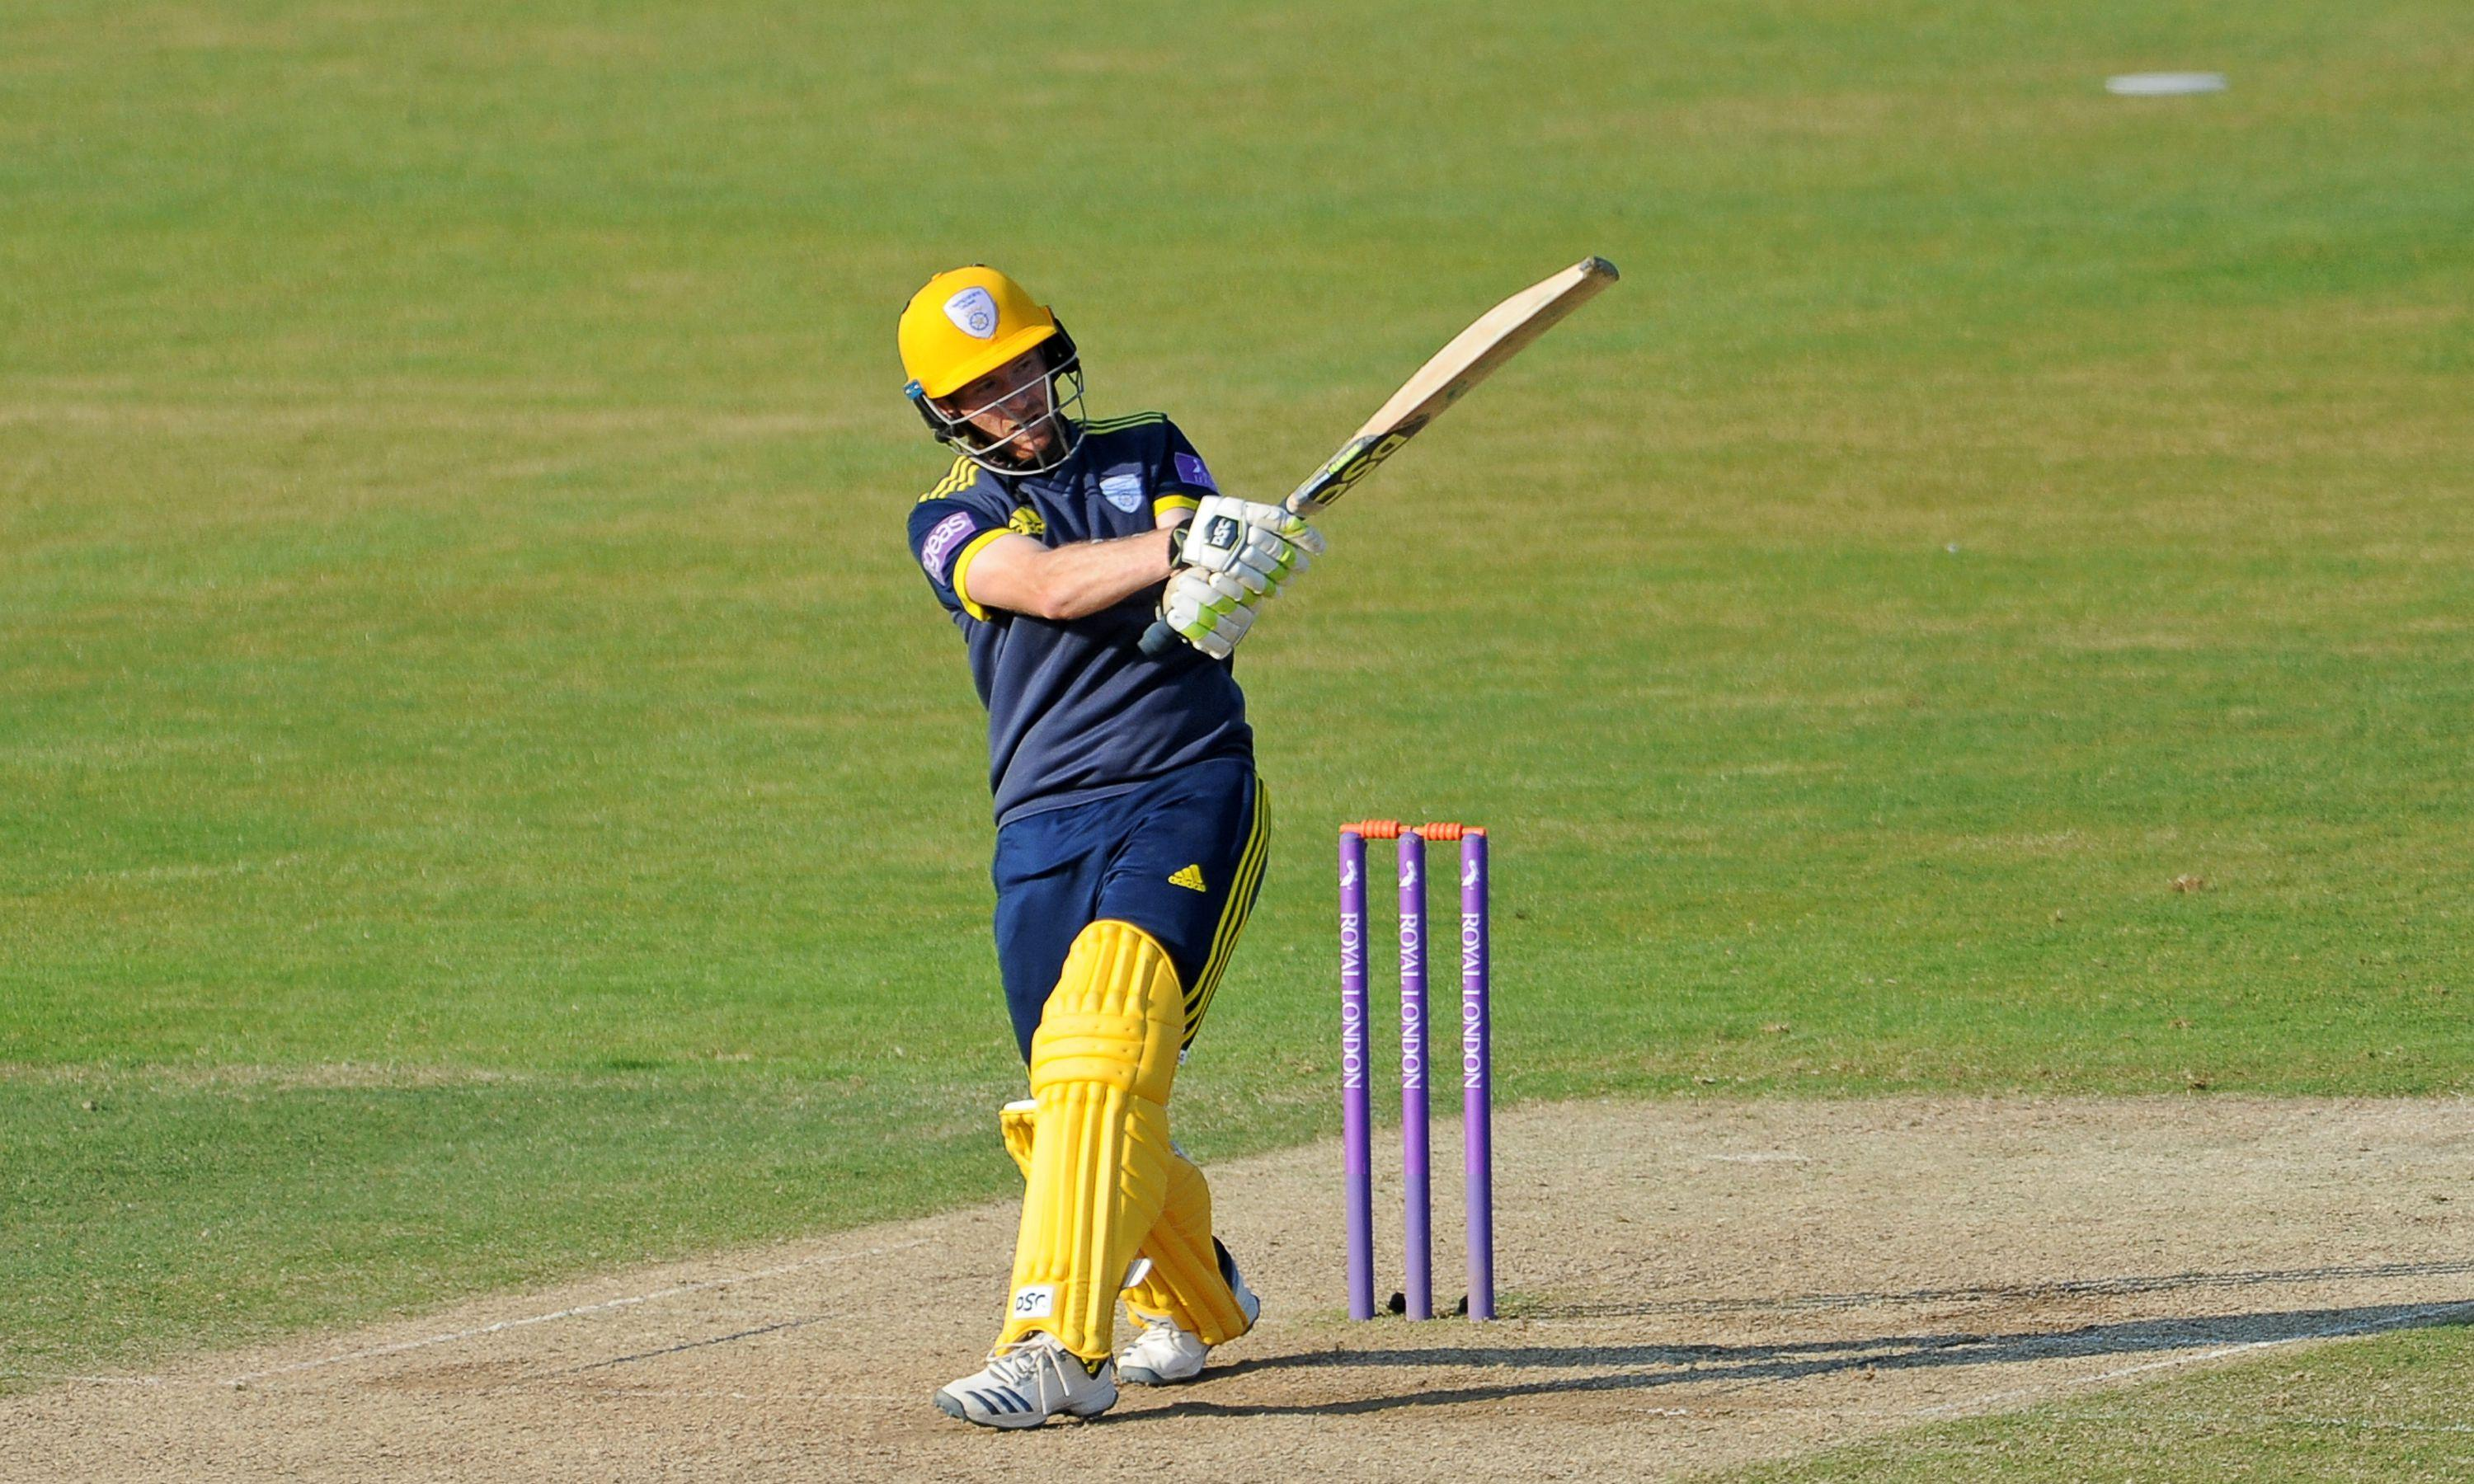 Liam Dawson in contention for World Cup spot after impressive county form